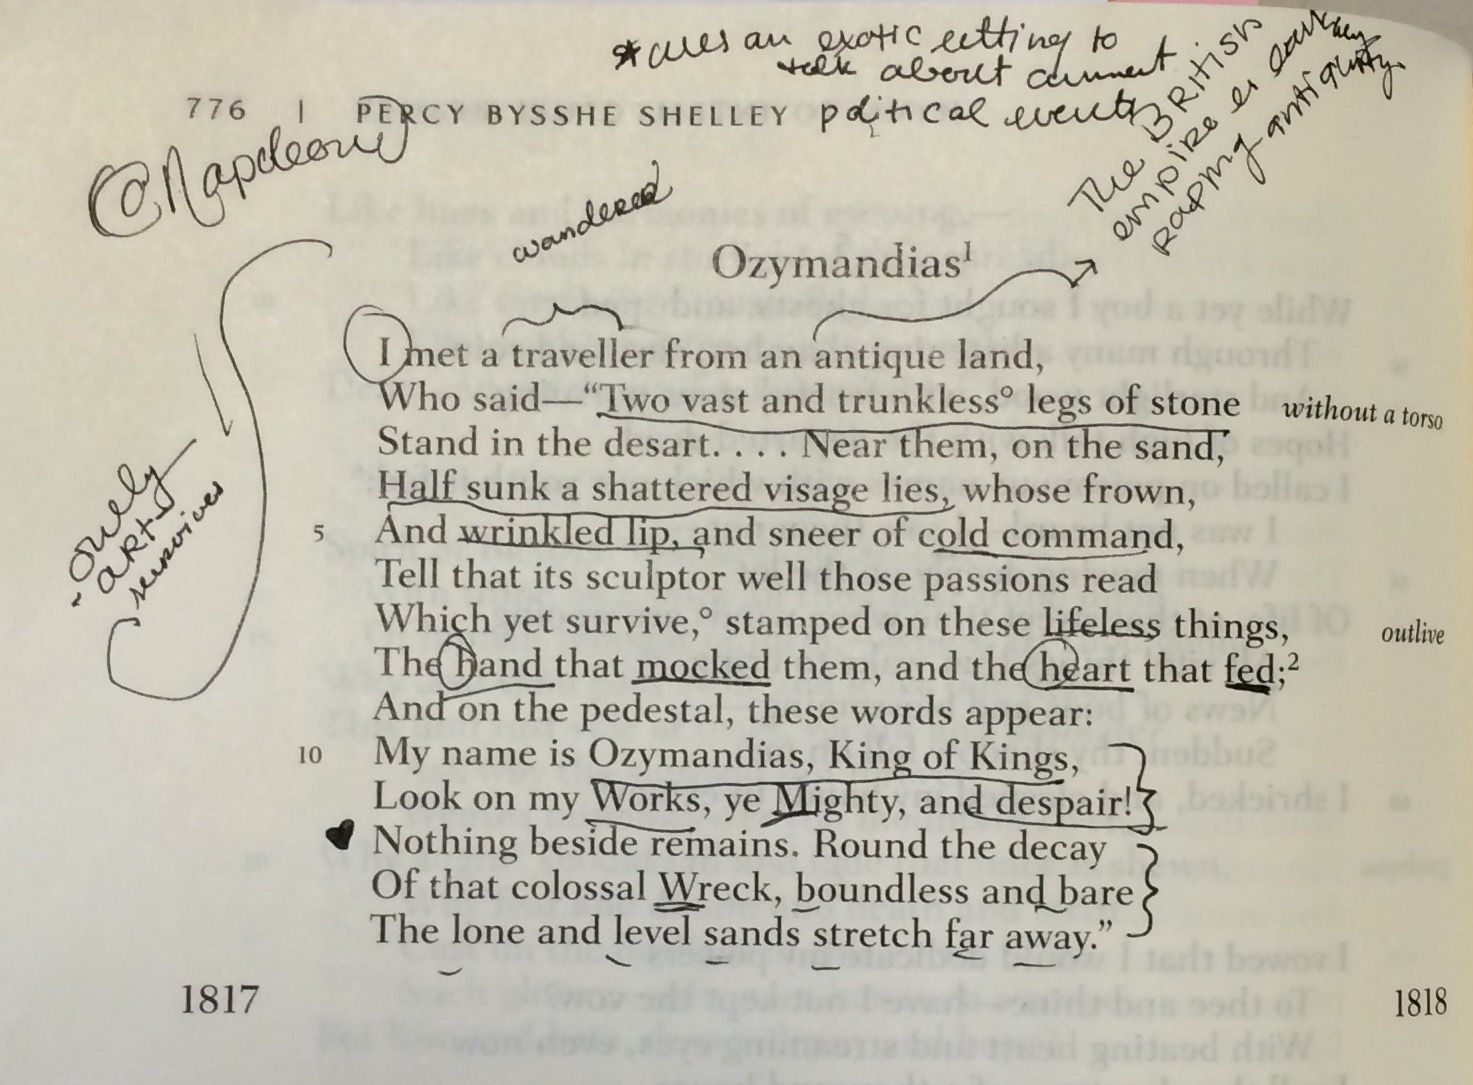 ozymandias poem analysis Ozymandias by percy bysshe shelley - love poem literary analysis, structural analysis and guidance for usage of quotes the main theme or central idea of ozymandias is to put into contrast an unavoidable decline of leaders and their empires which they make to perpetuate the memories of what they love.